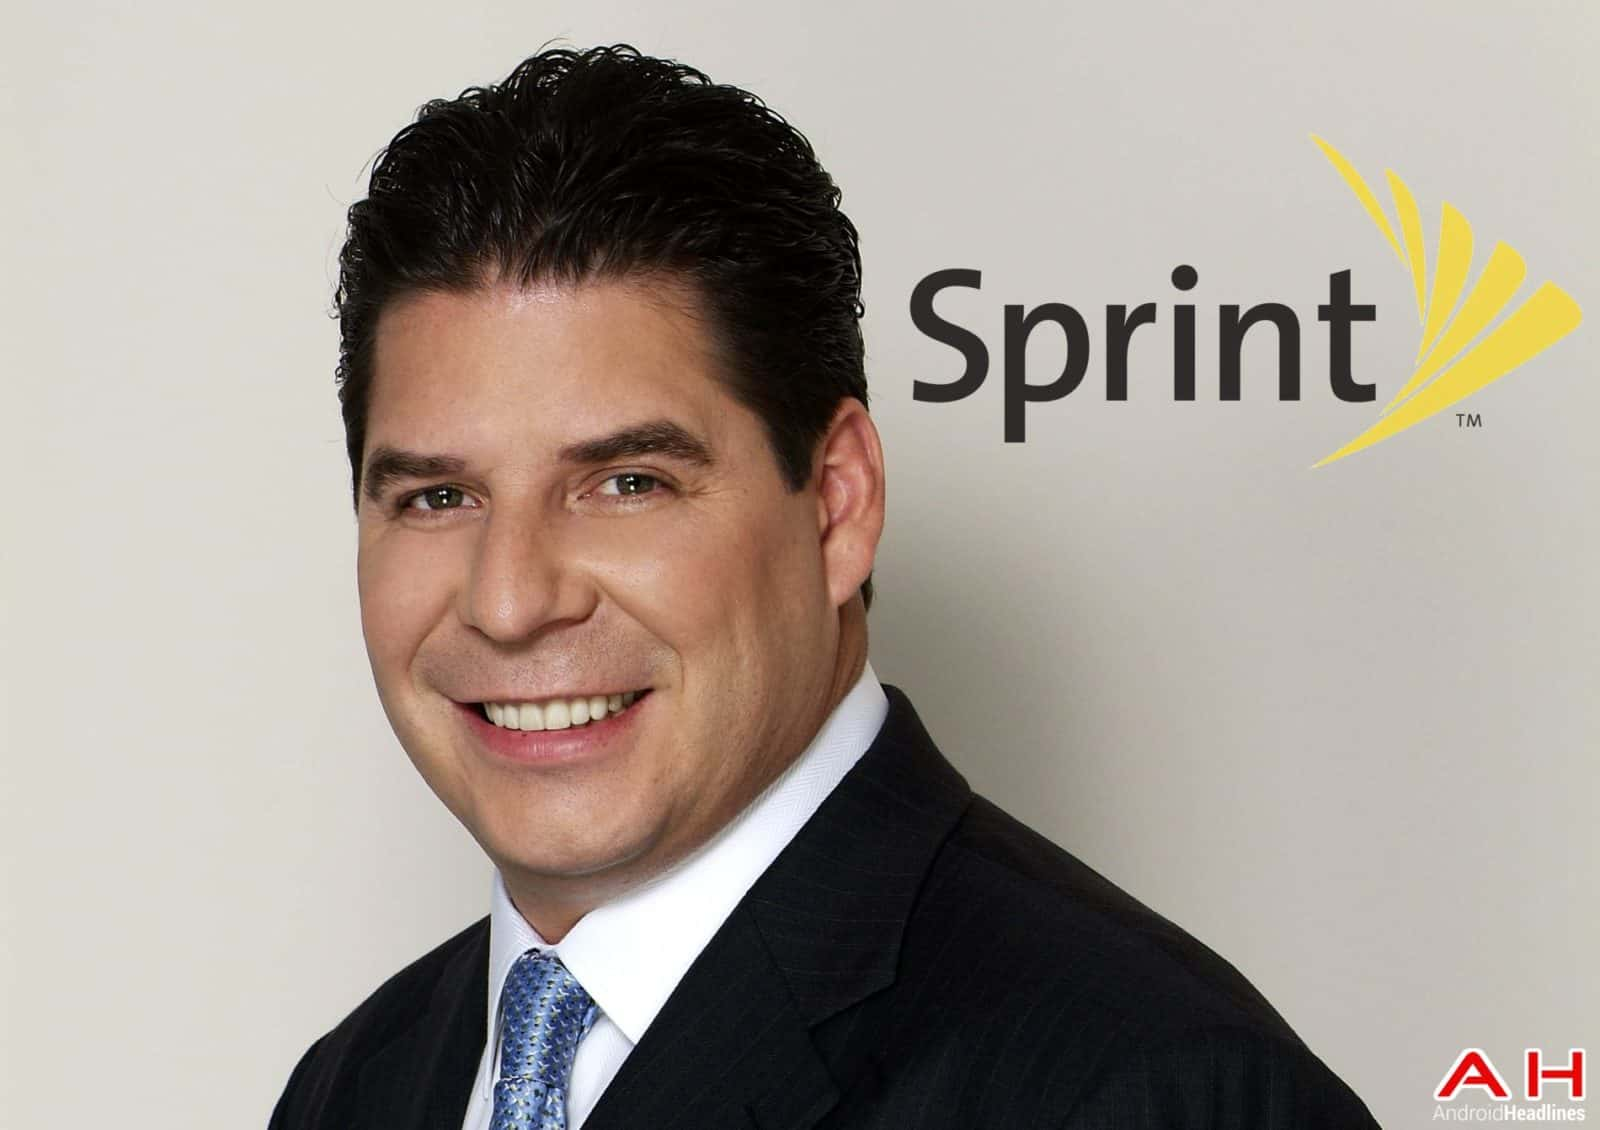 the life and work of marcelo claure @marceloclaure father of 6  antwort an @marceloclaure @sprint ain't got  nothing on my girl  read my bio   @dolphin5958 3 feb mehr.